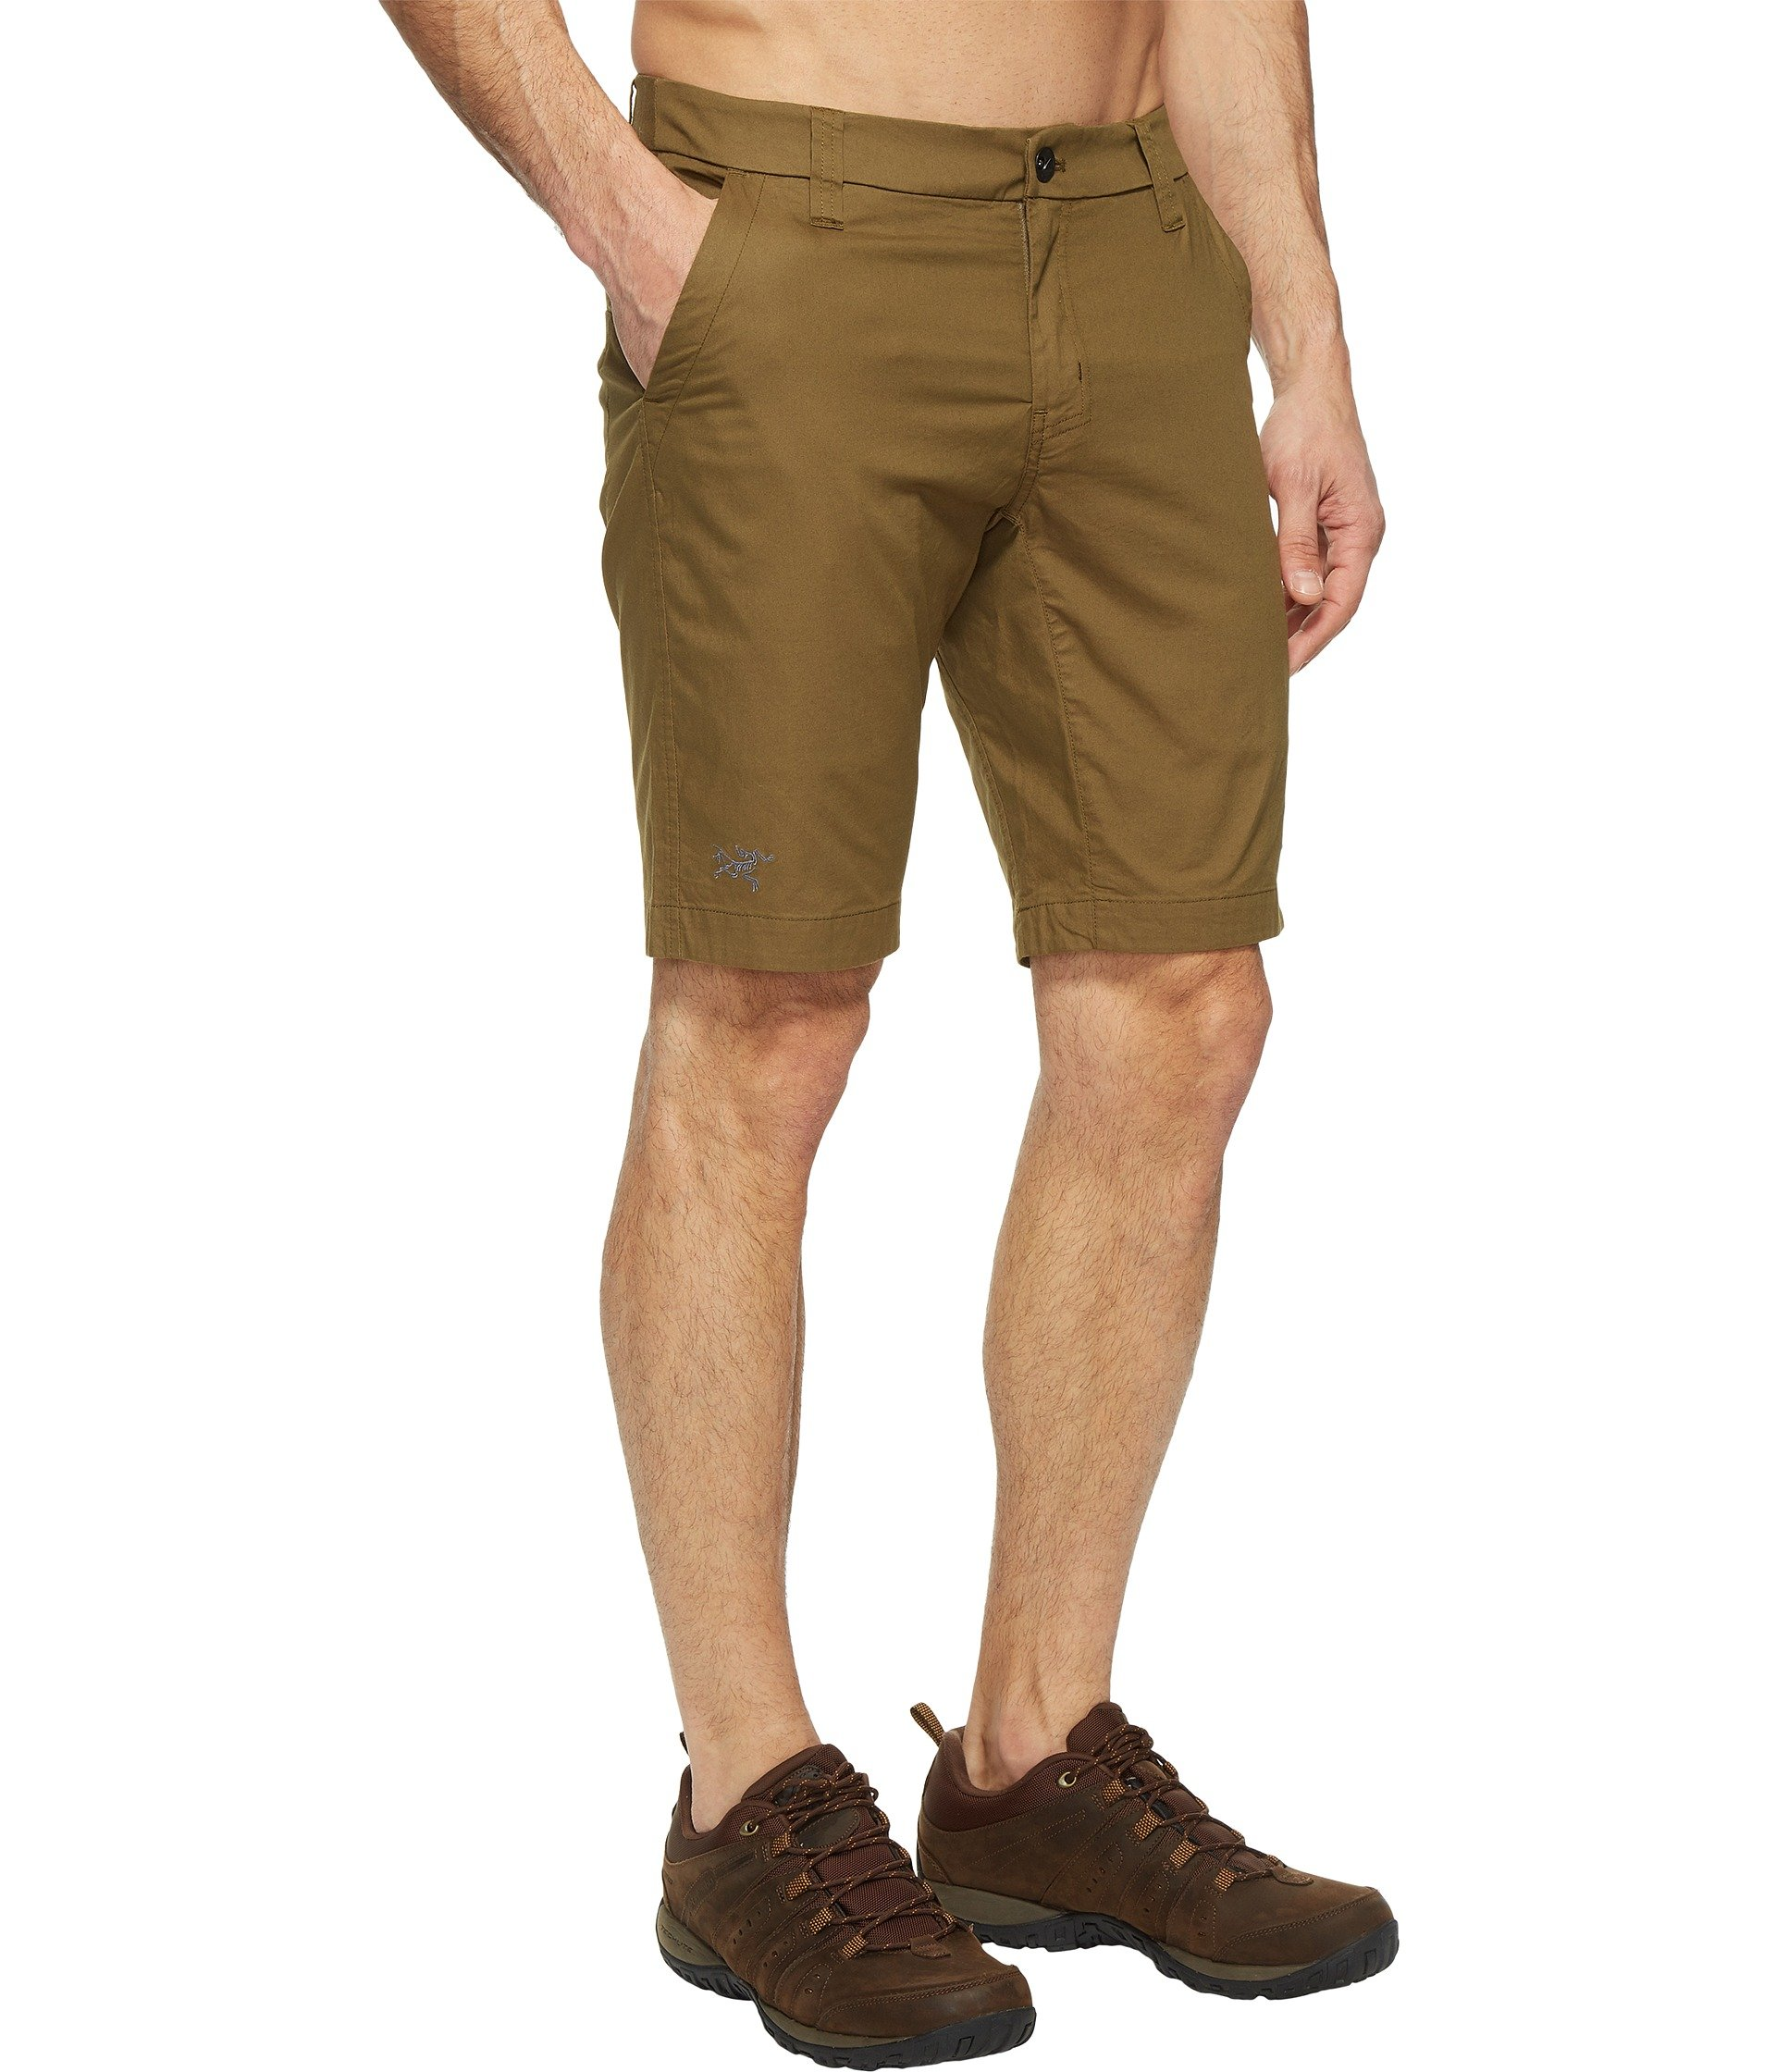 atlin guys Arc'teryx atlin chino pant, men's  comfortable, casual, midweight cotton blend chinos for everyday work and play.